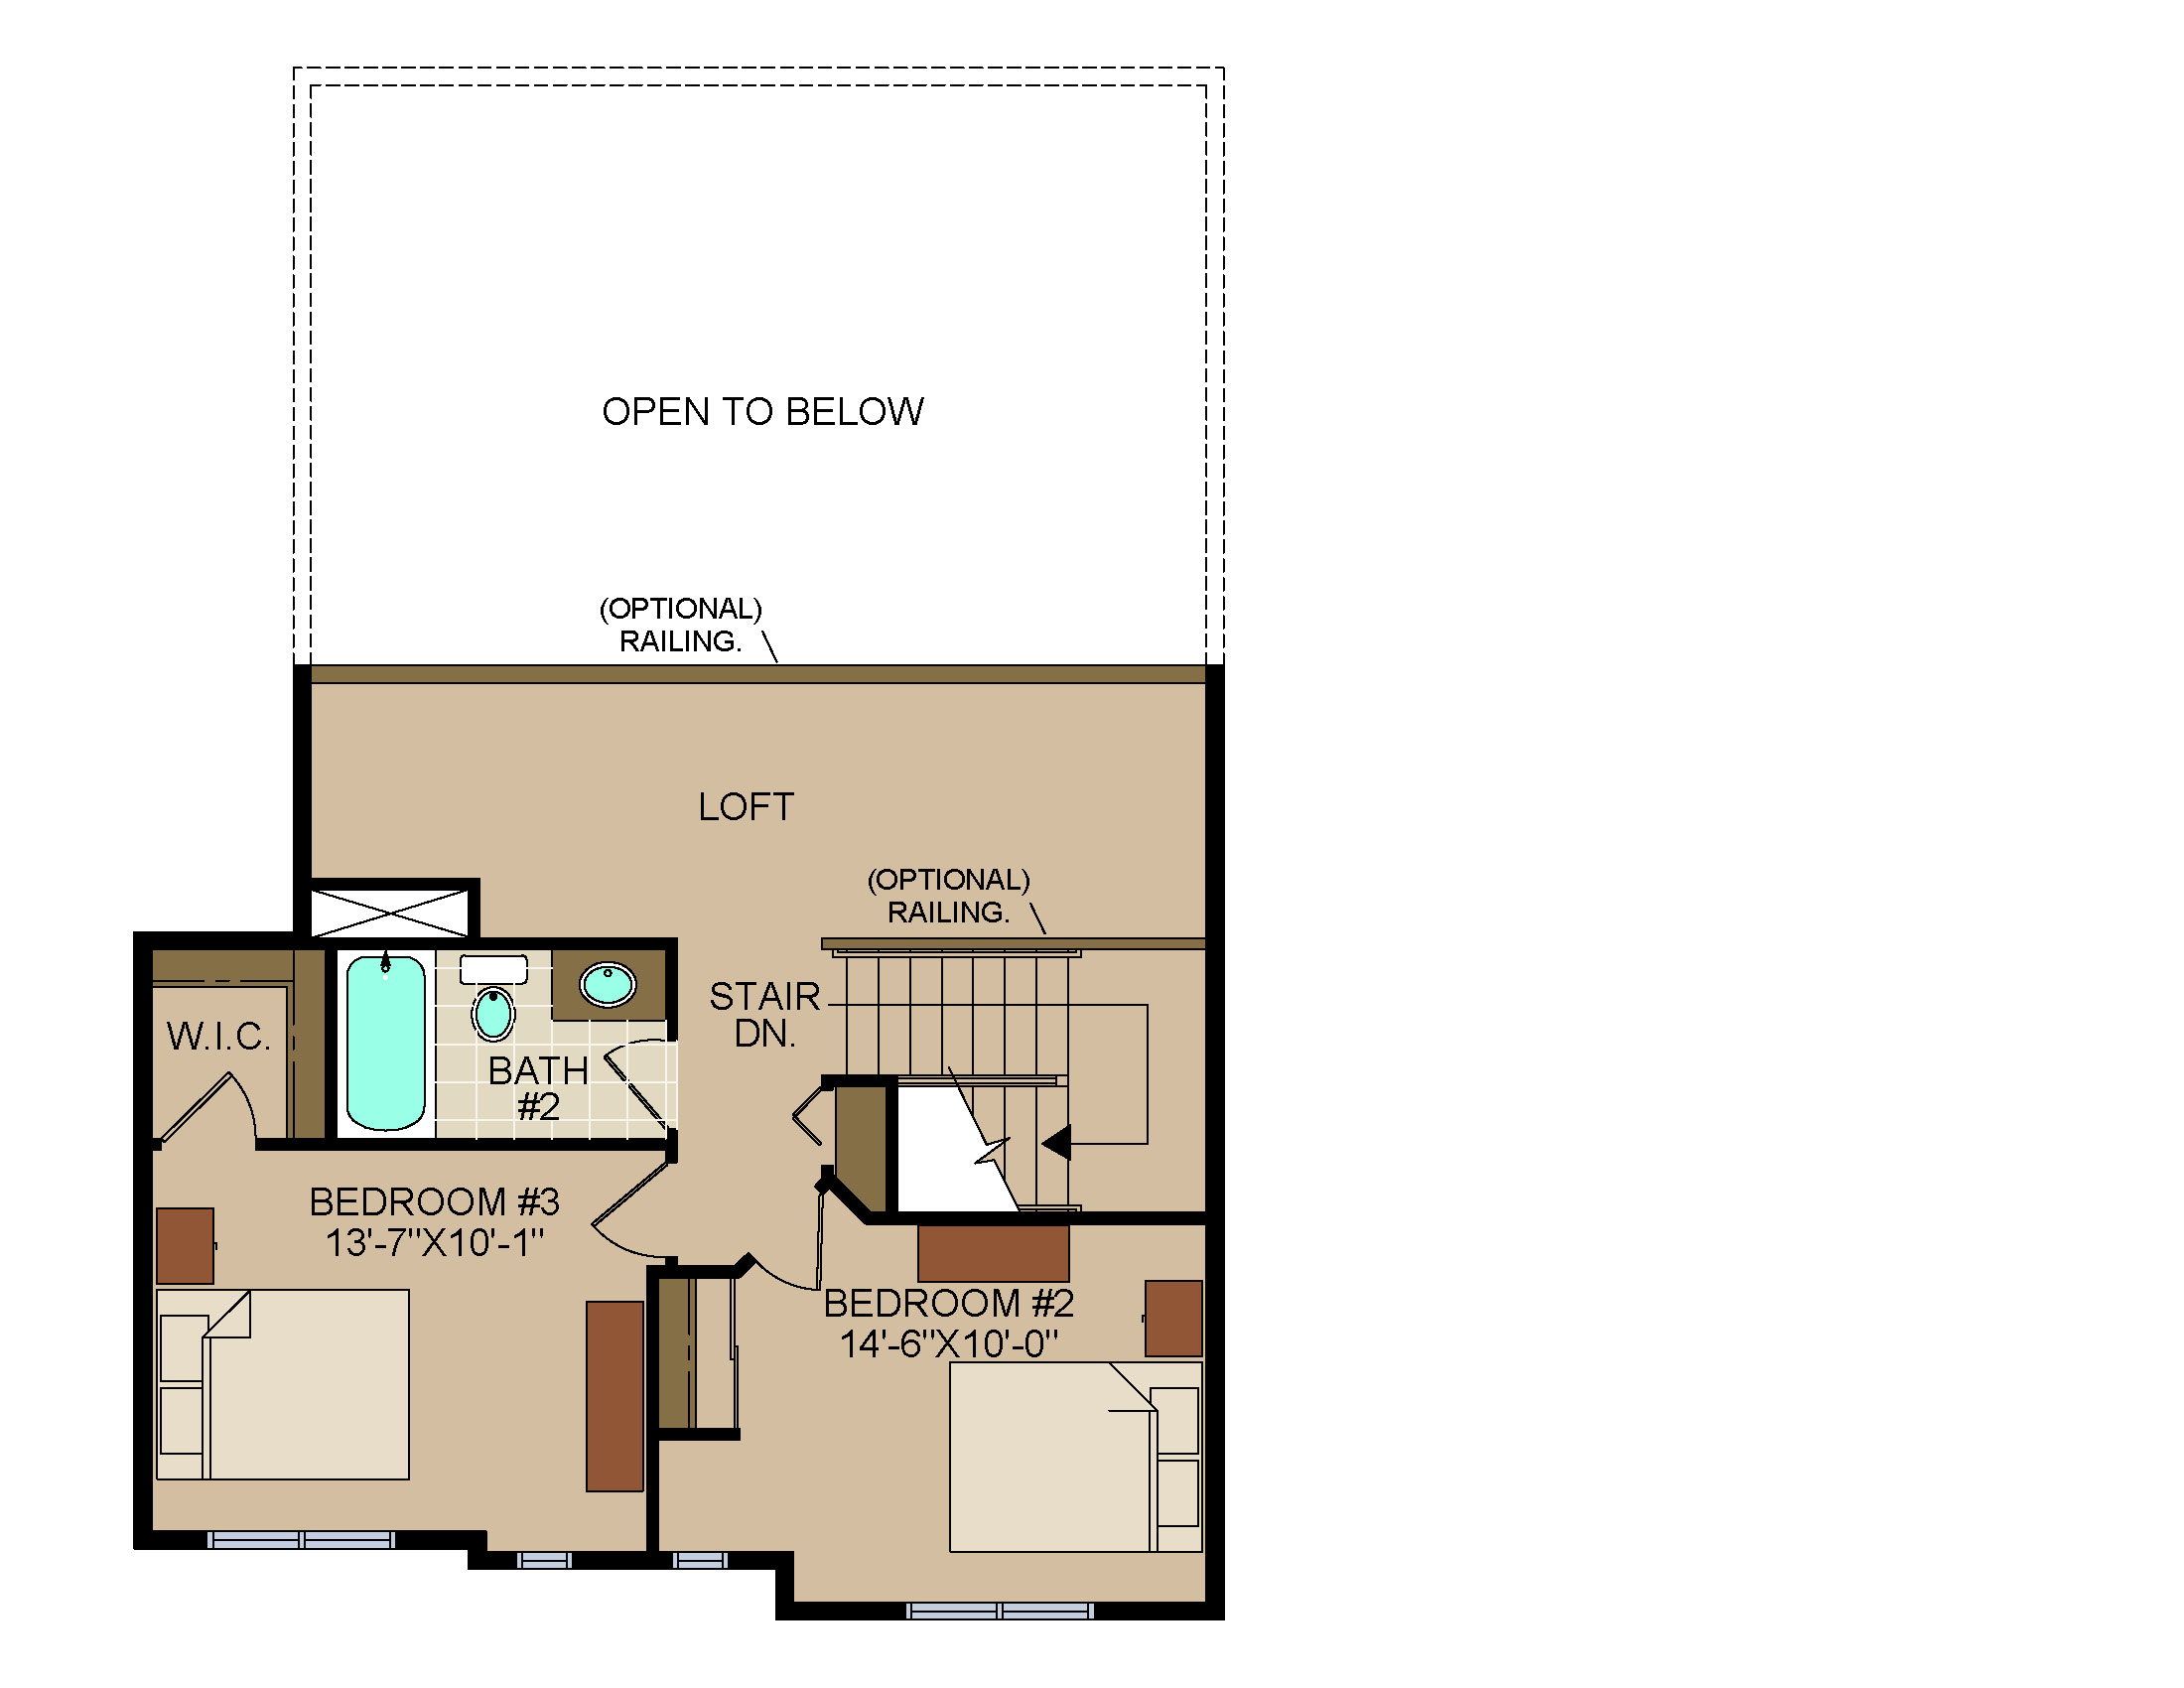 2013kirkland-secondfloorplan.jpg